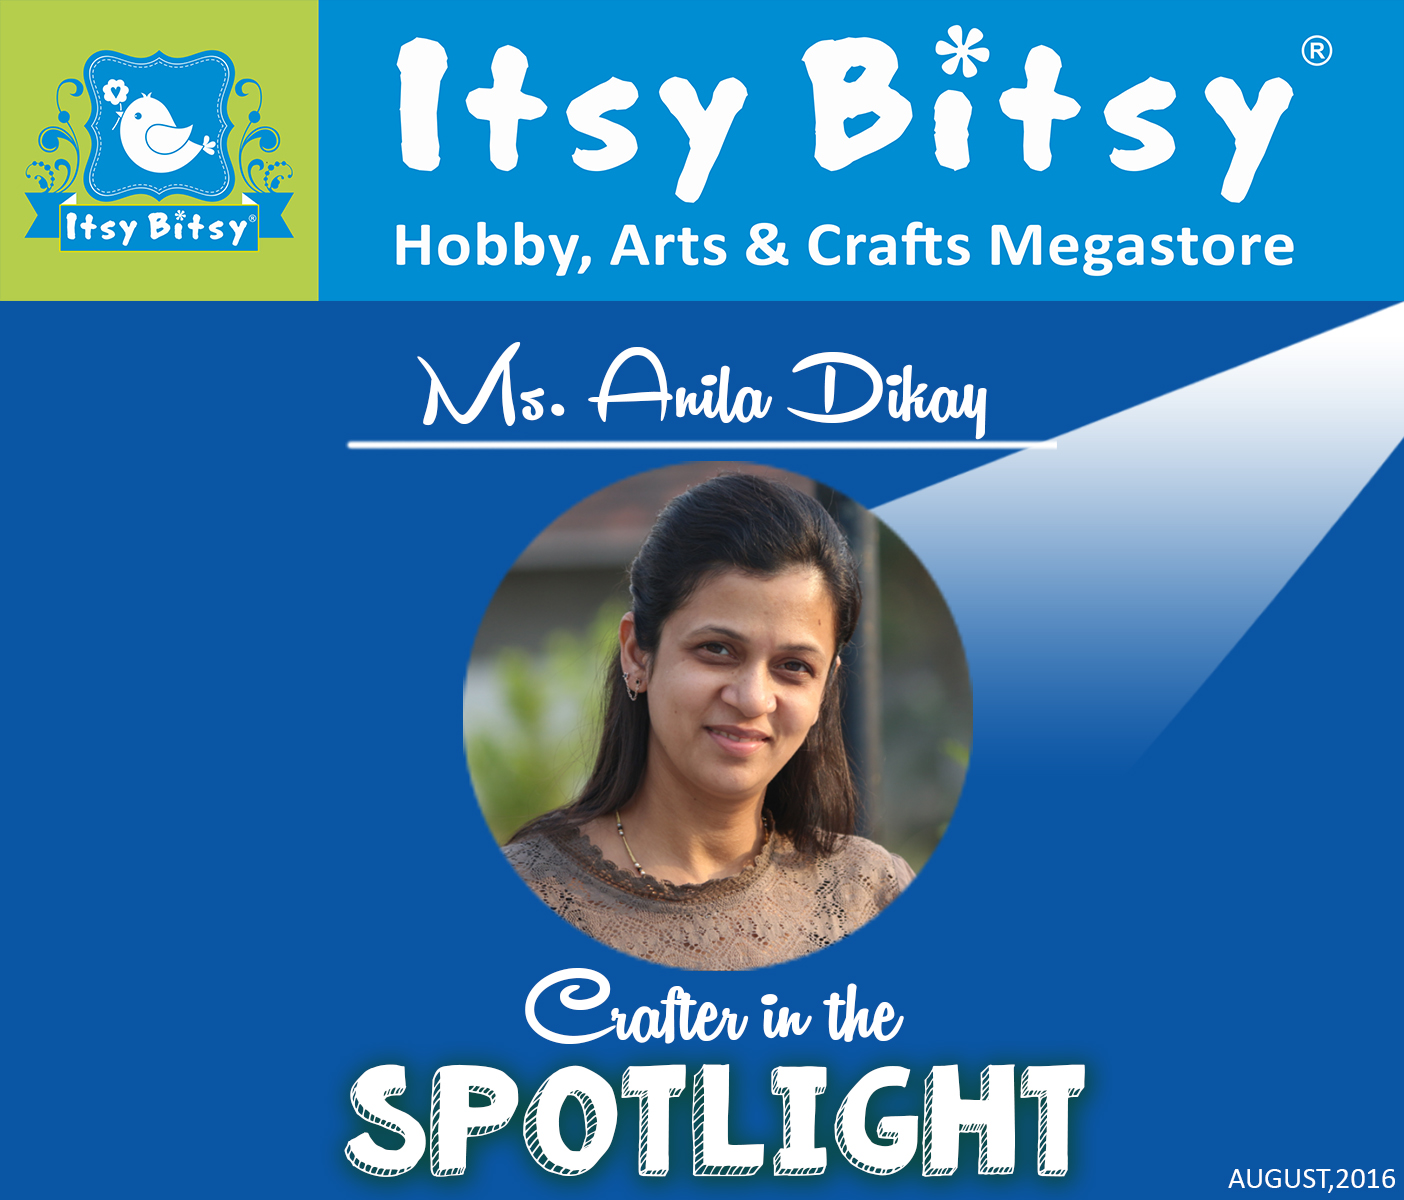 Crafter in spotlight!